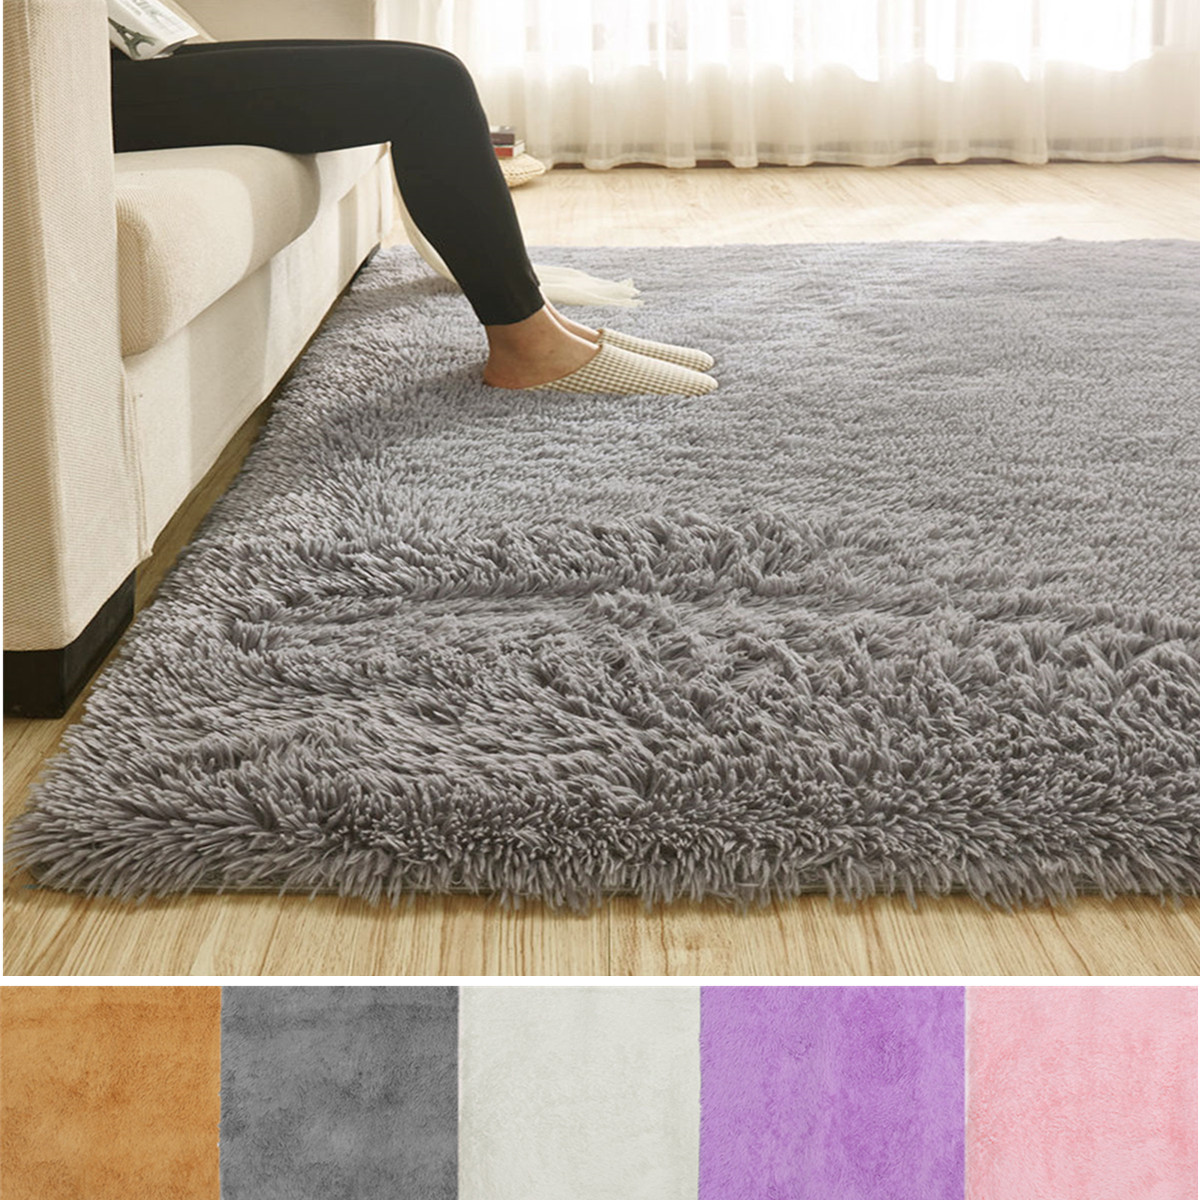 Soft Fluffy Floor Rug by